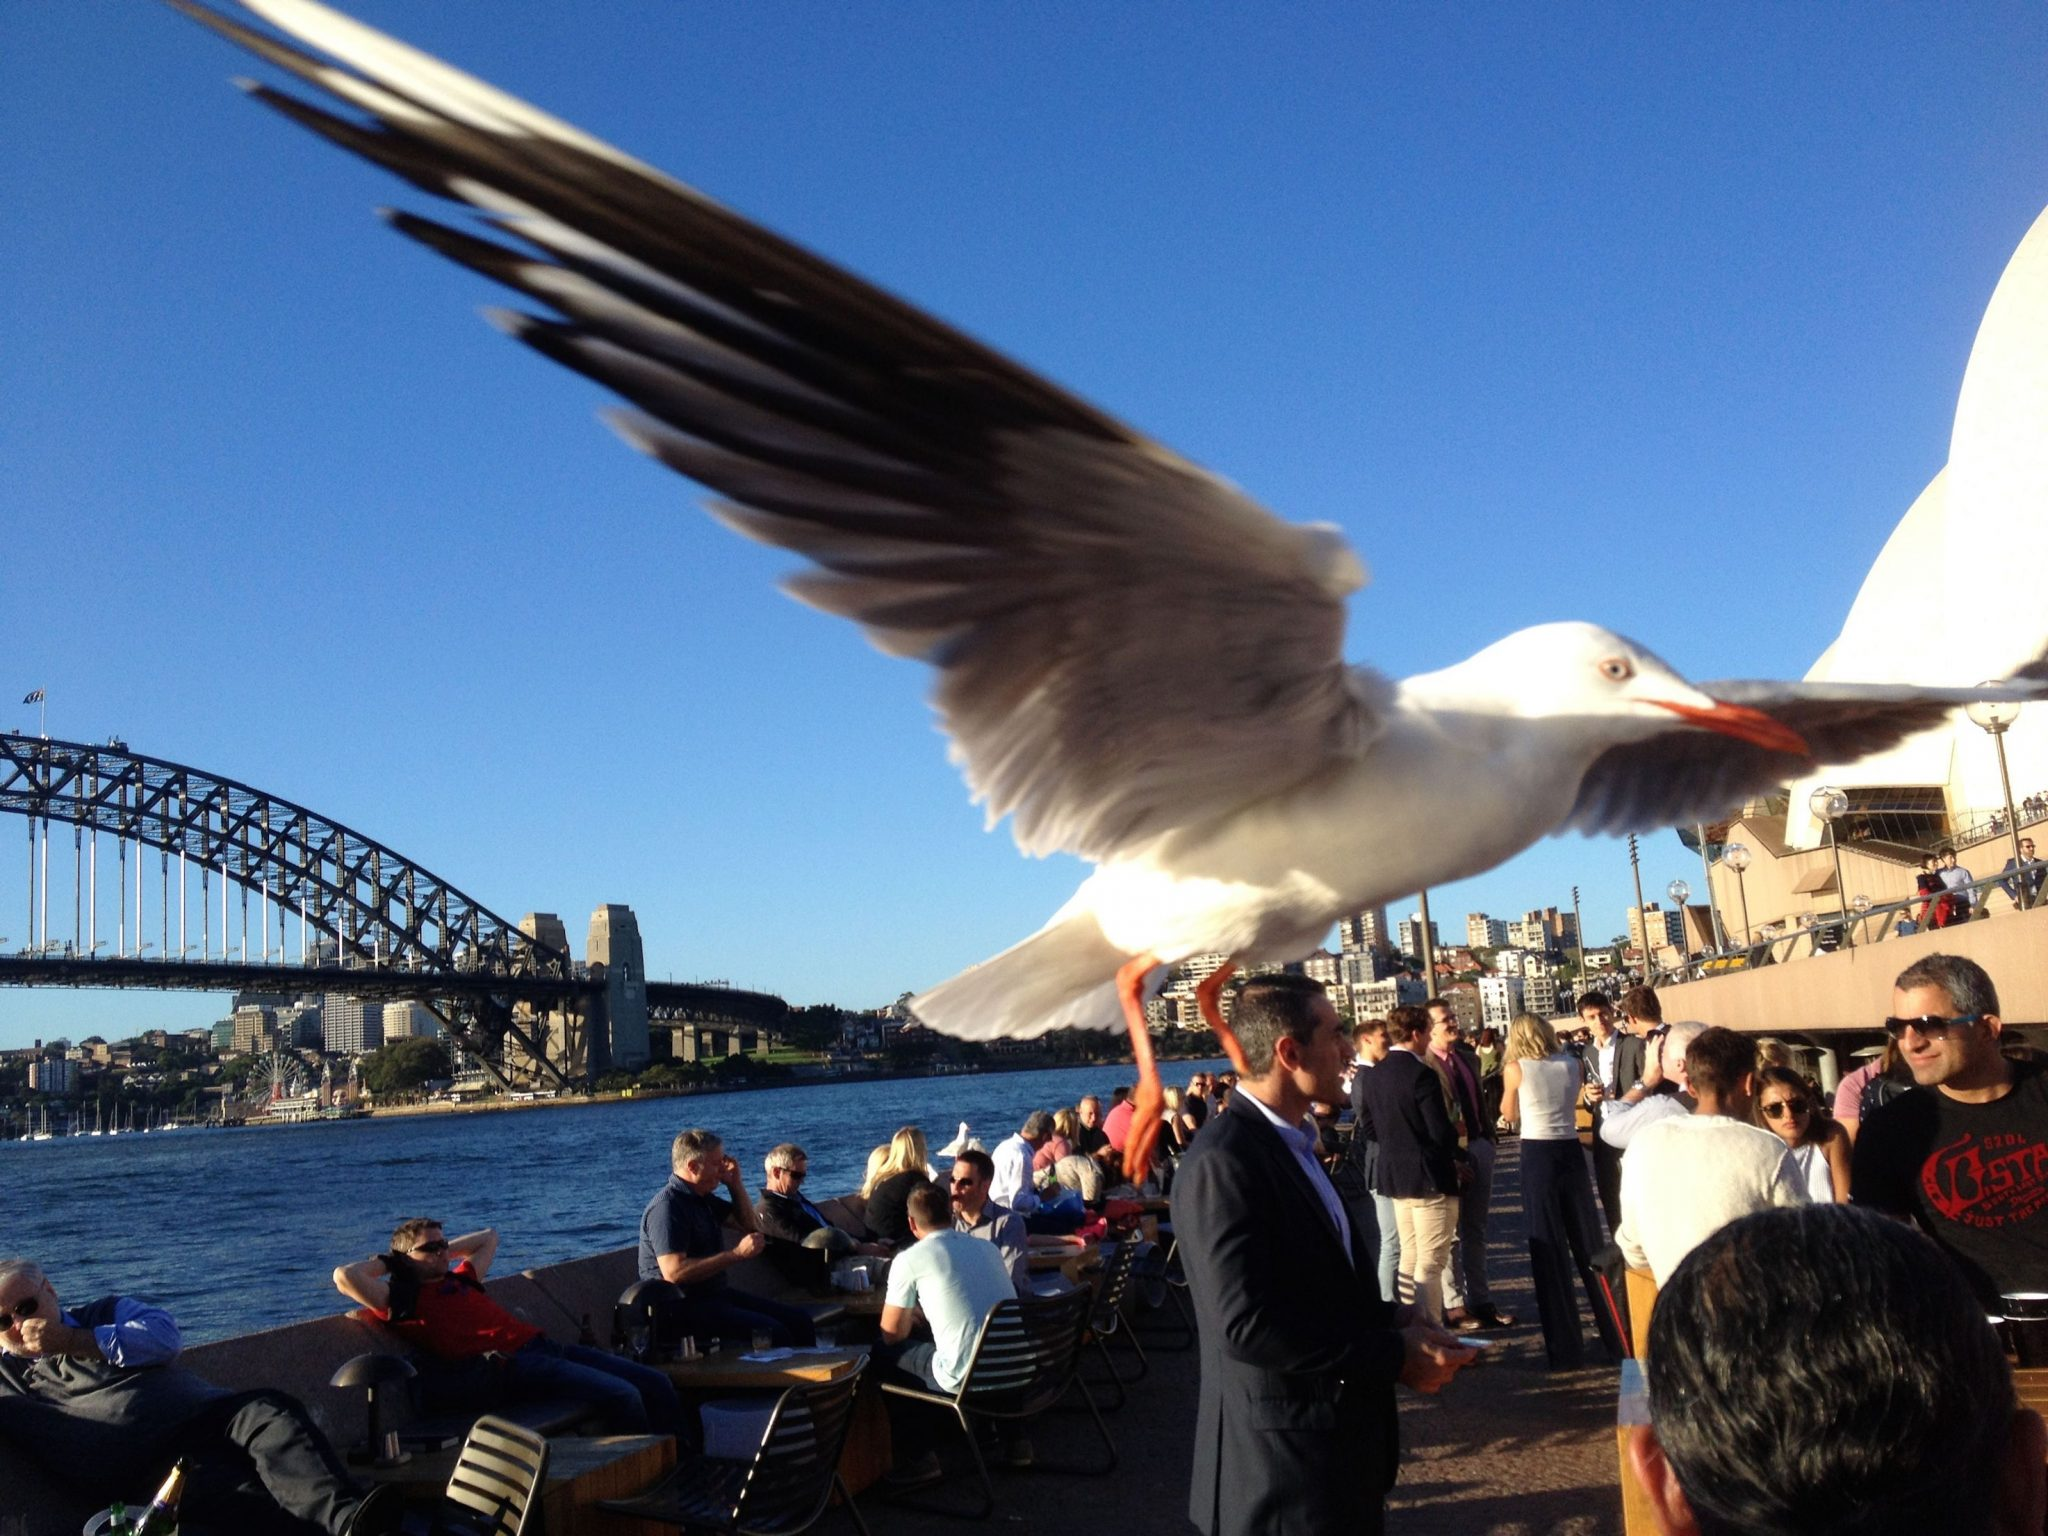 41.1. Birds - Sea gulls flew near the Sydney Opera House. Look at what happened to us in the next photos! jpg copy